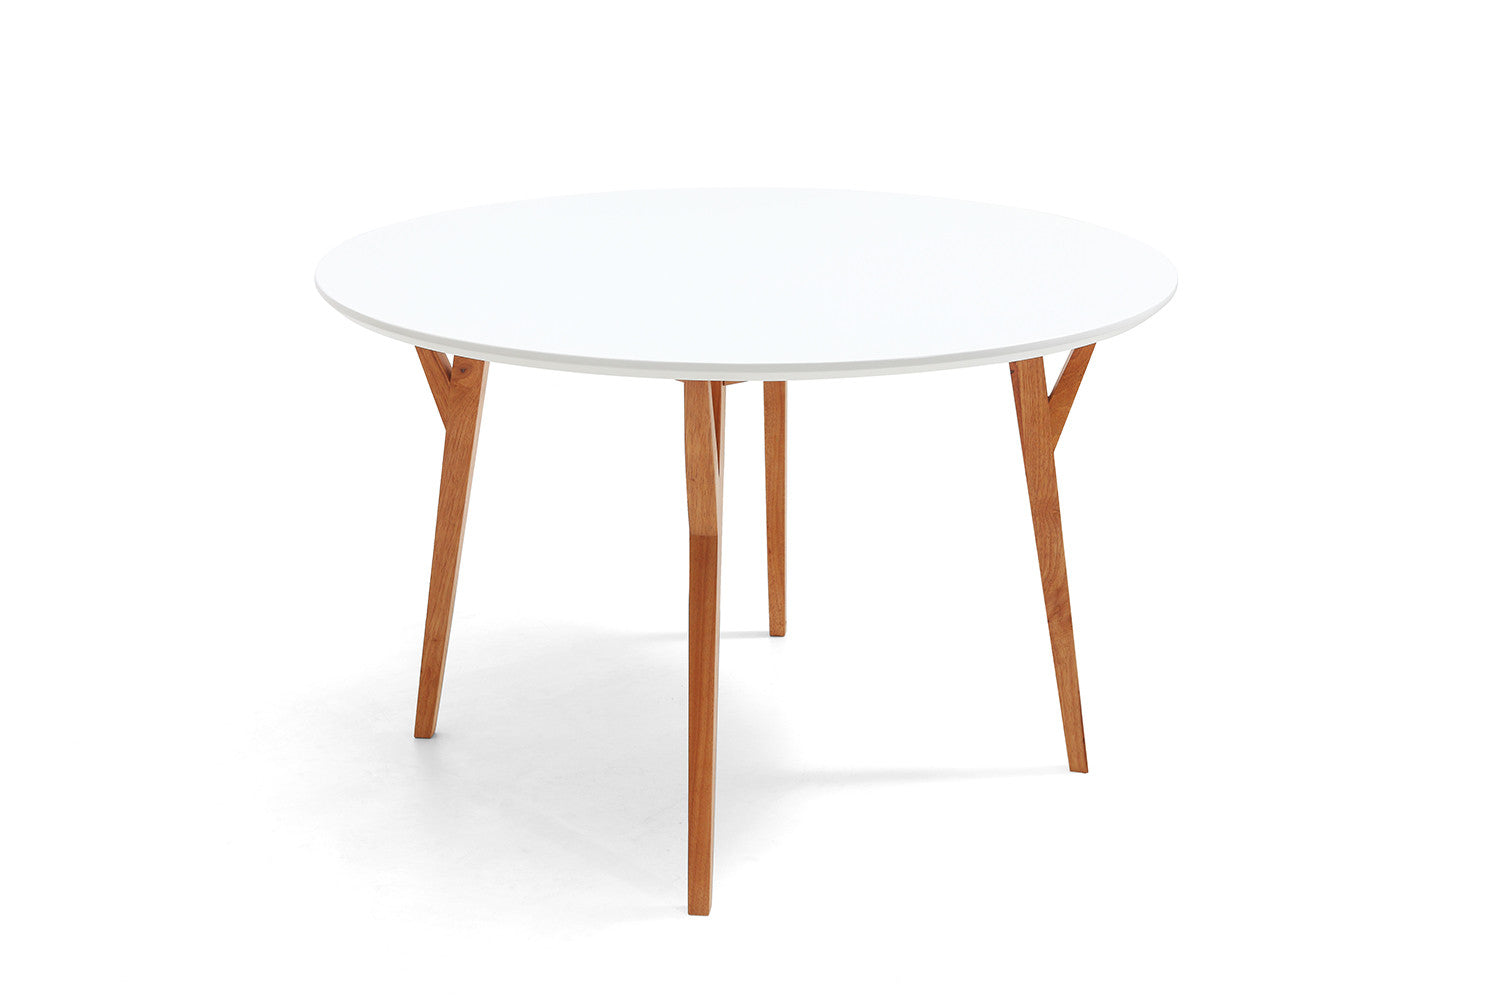 Table de salle manger ronde design scandinave moesa for Table ronde de salle a manger